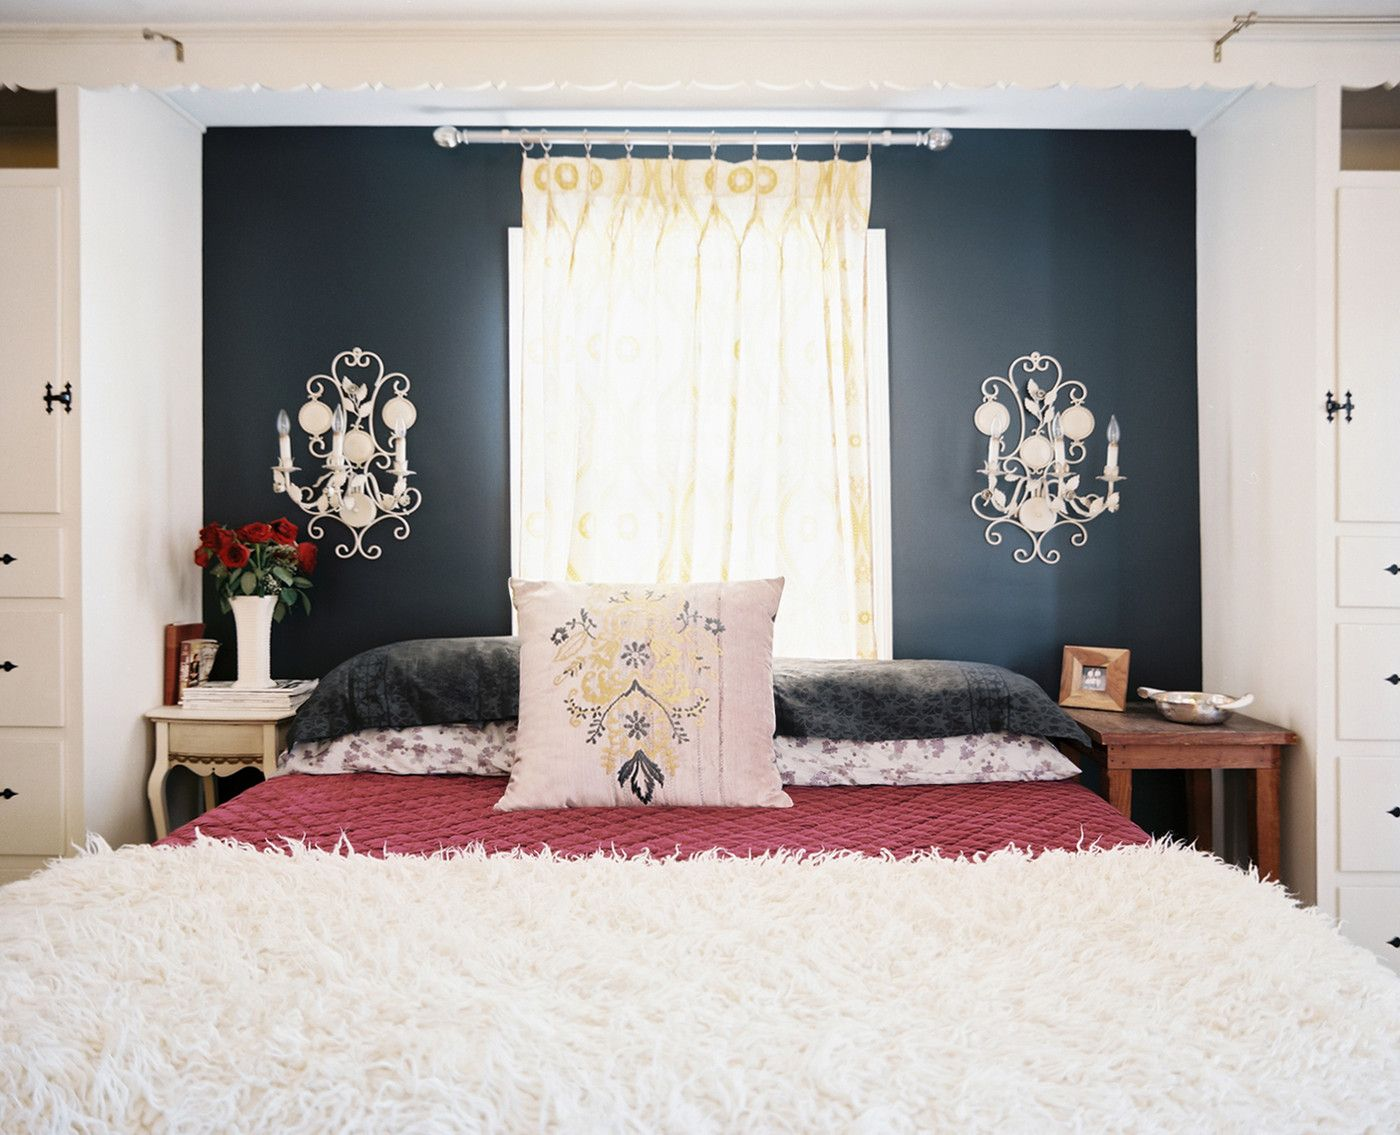 A black accent wall and white vintage sconces in a bedroom